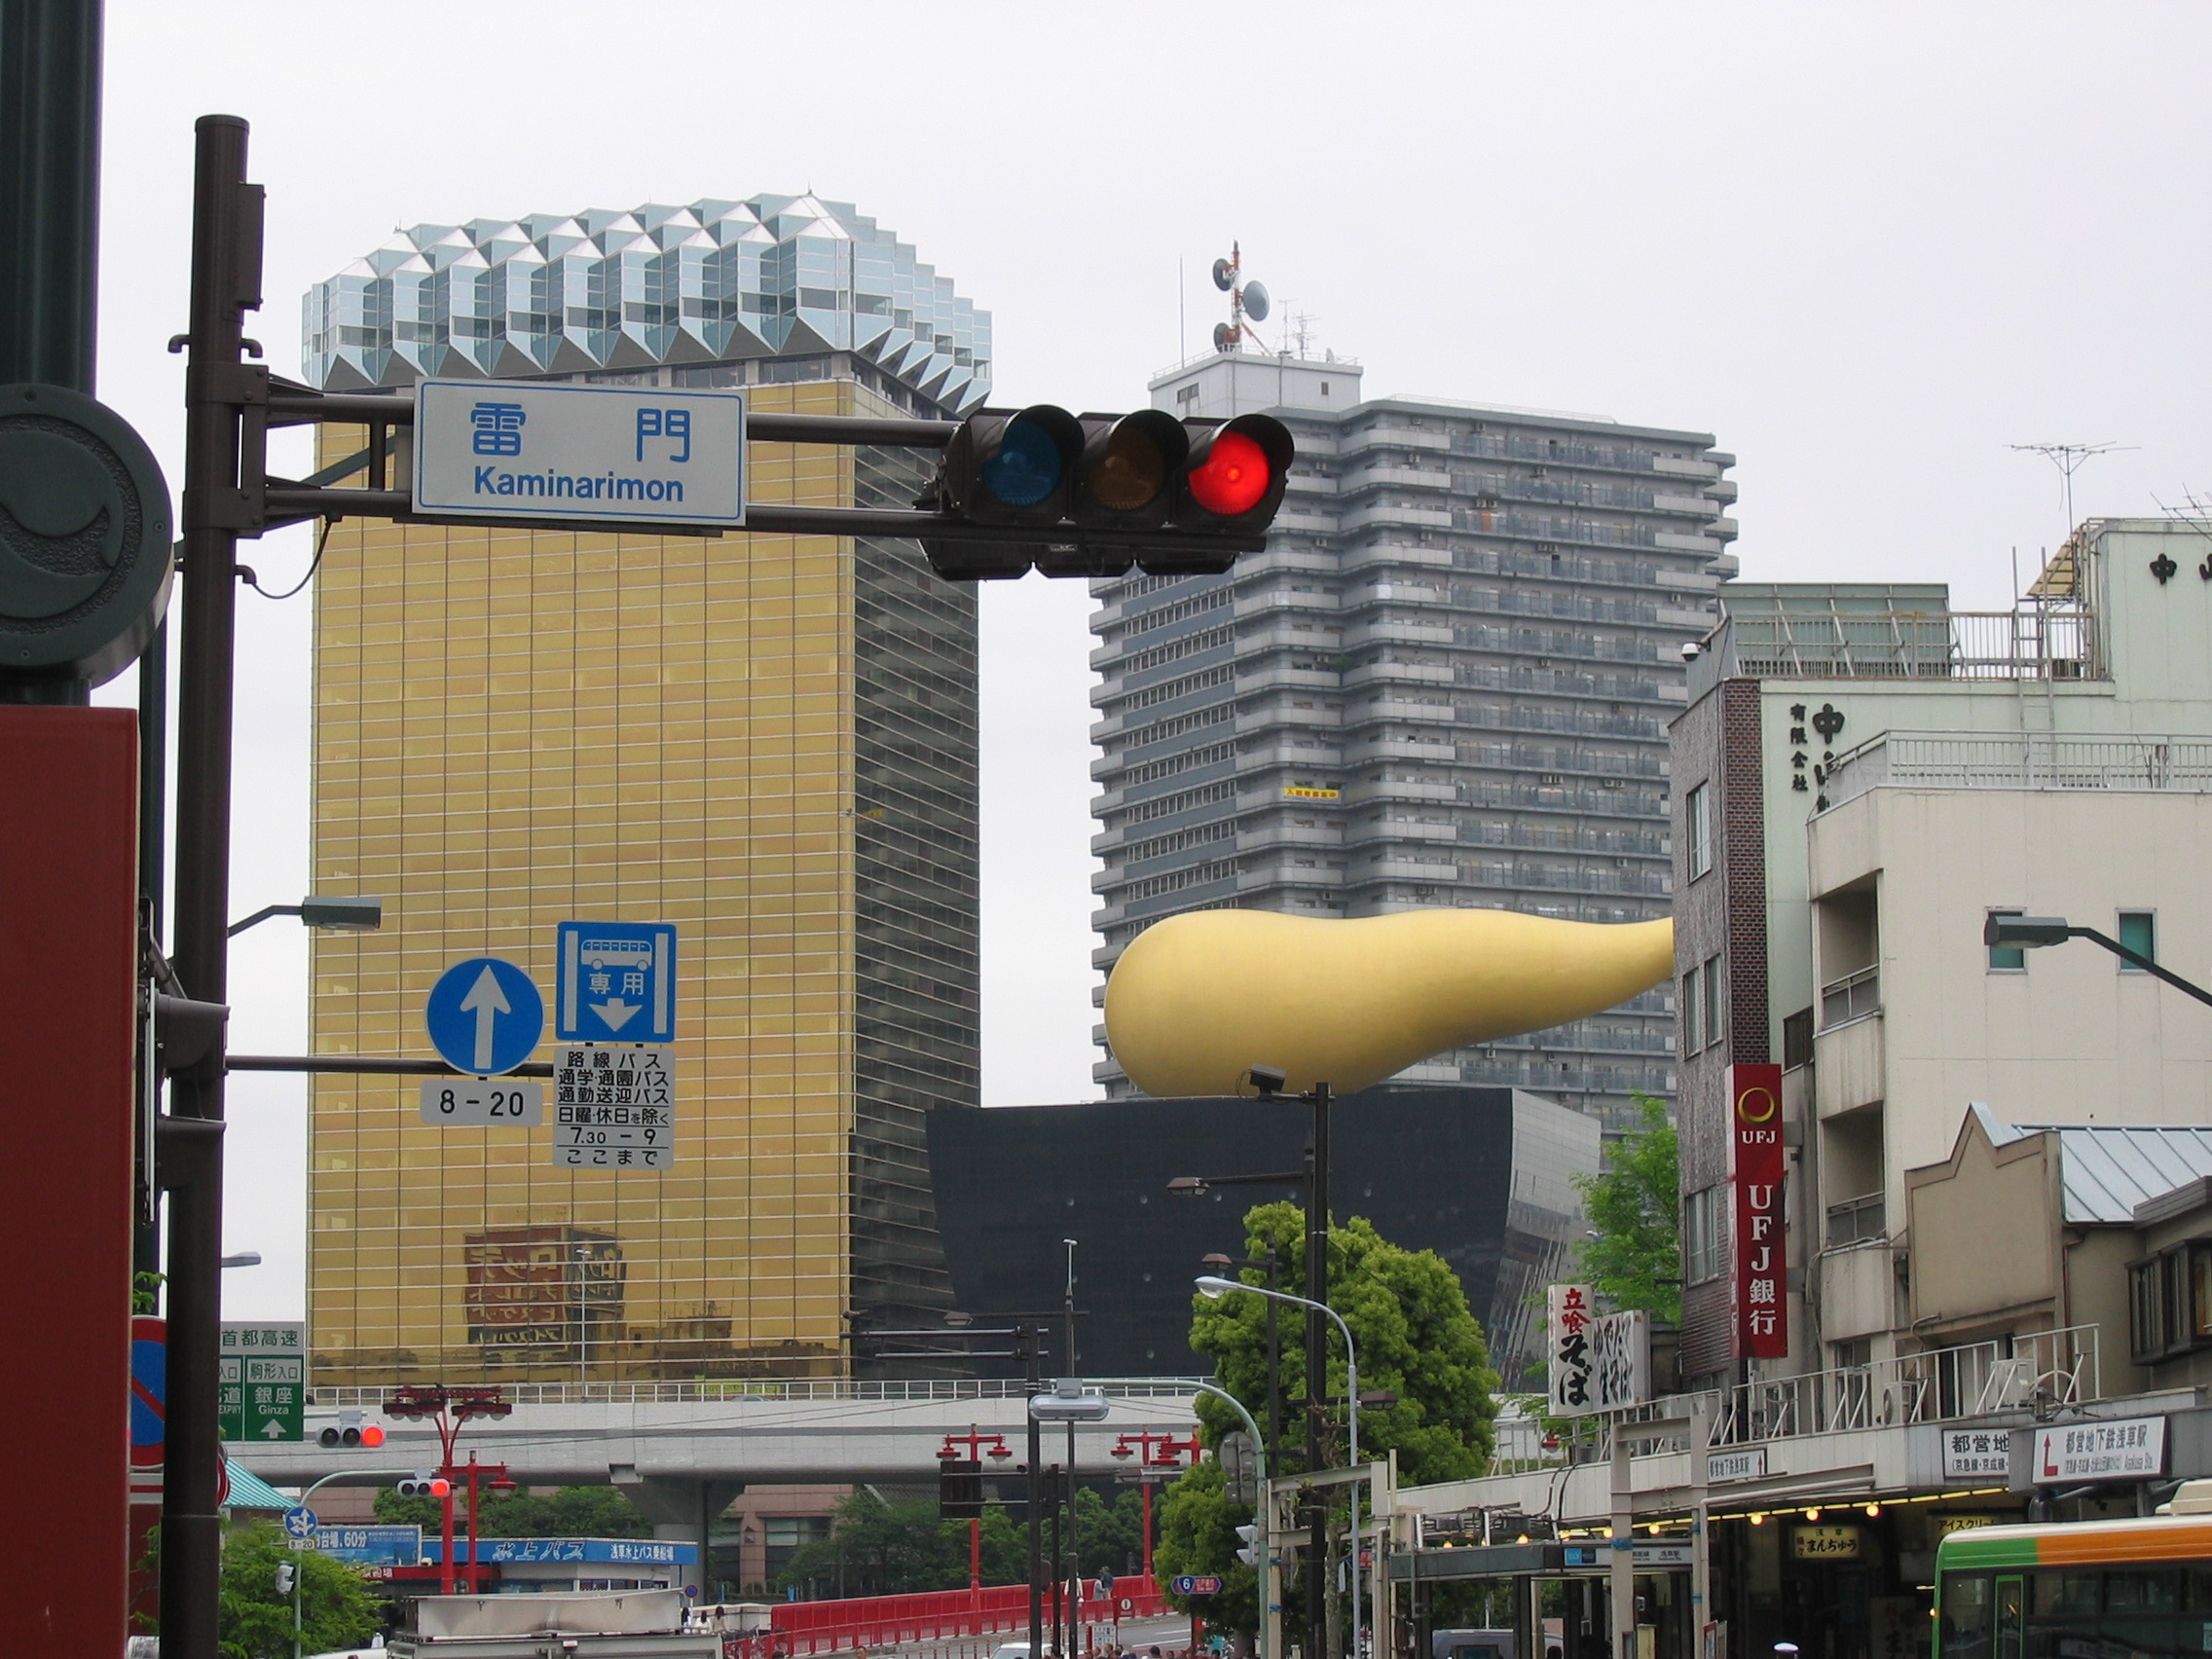 Asahi beer tower and the Flamme d'Or